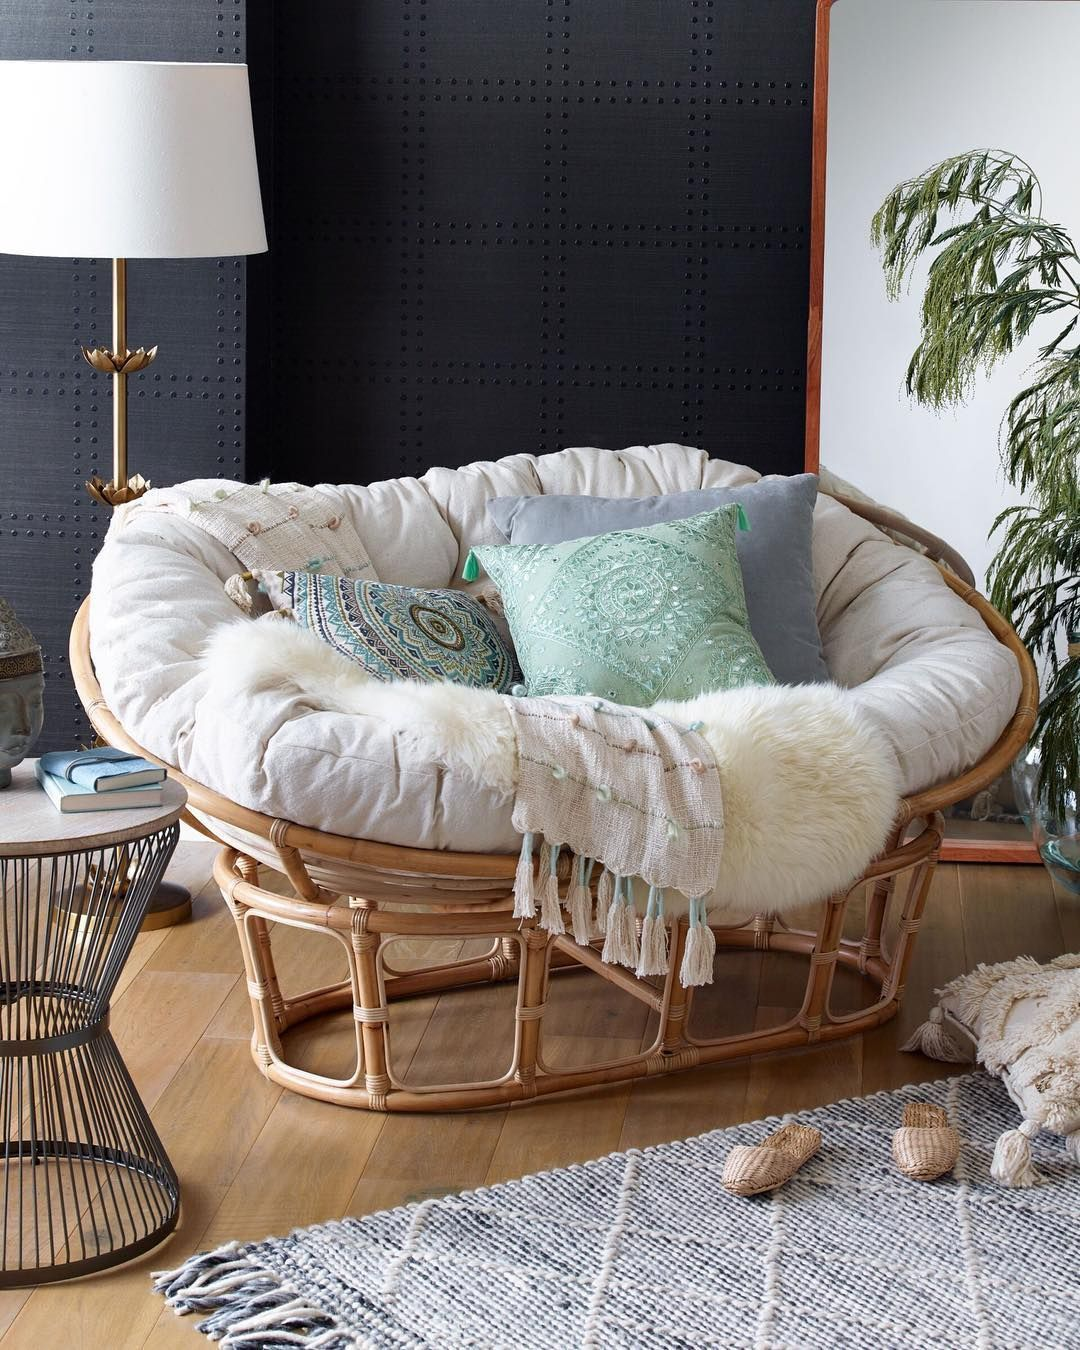 We Rounded Up Some Of Our Favorite Interior Design Ideas Along With Handy Decor Tips Interiordetail Comfy Chairs Papasan Chair Living Room Living Room Chairs Cute chairs for living room